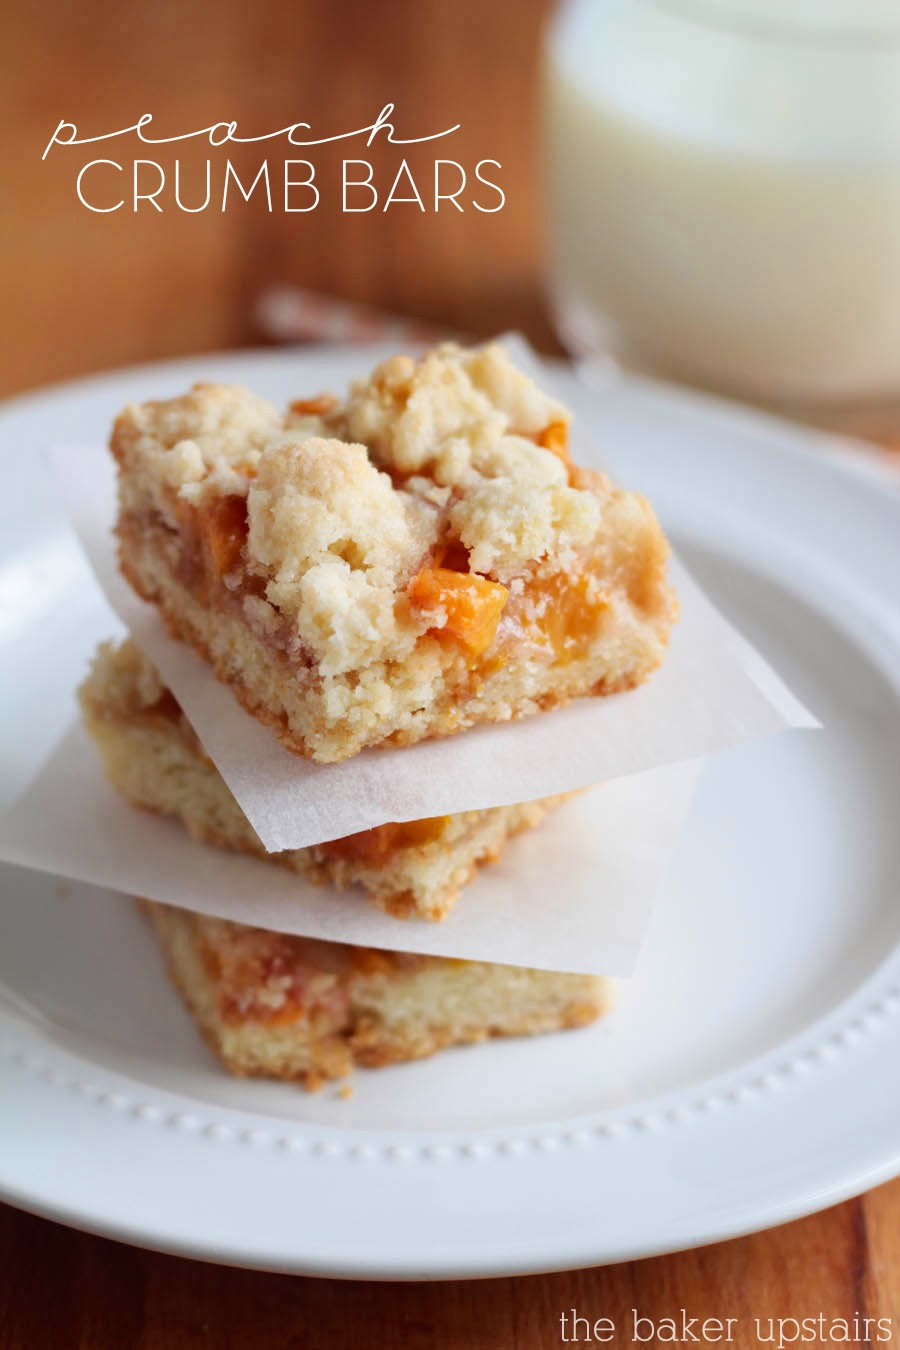 the baker upstairs: peach crumb bars